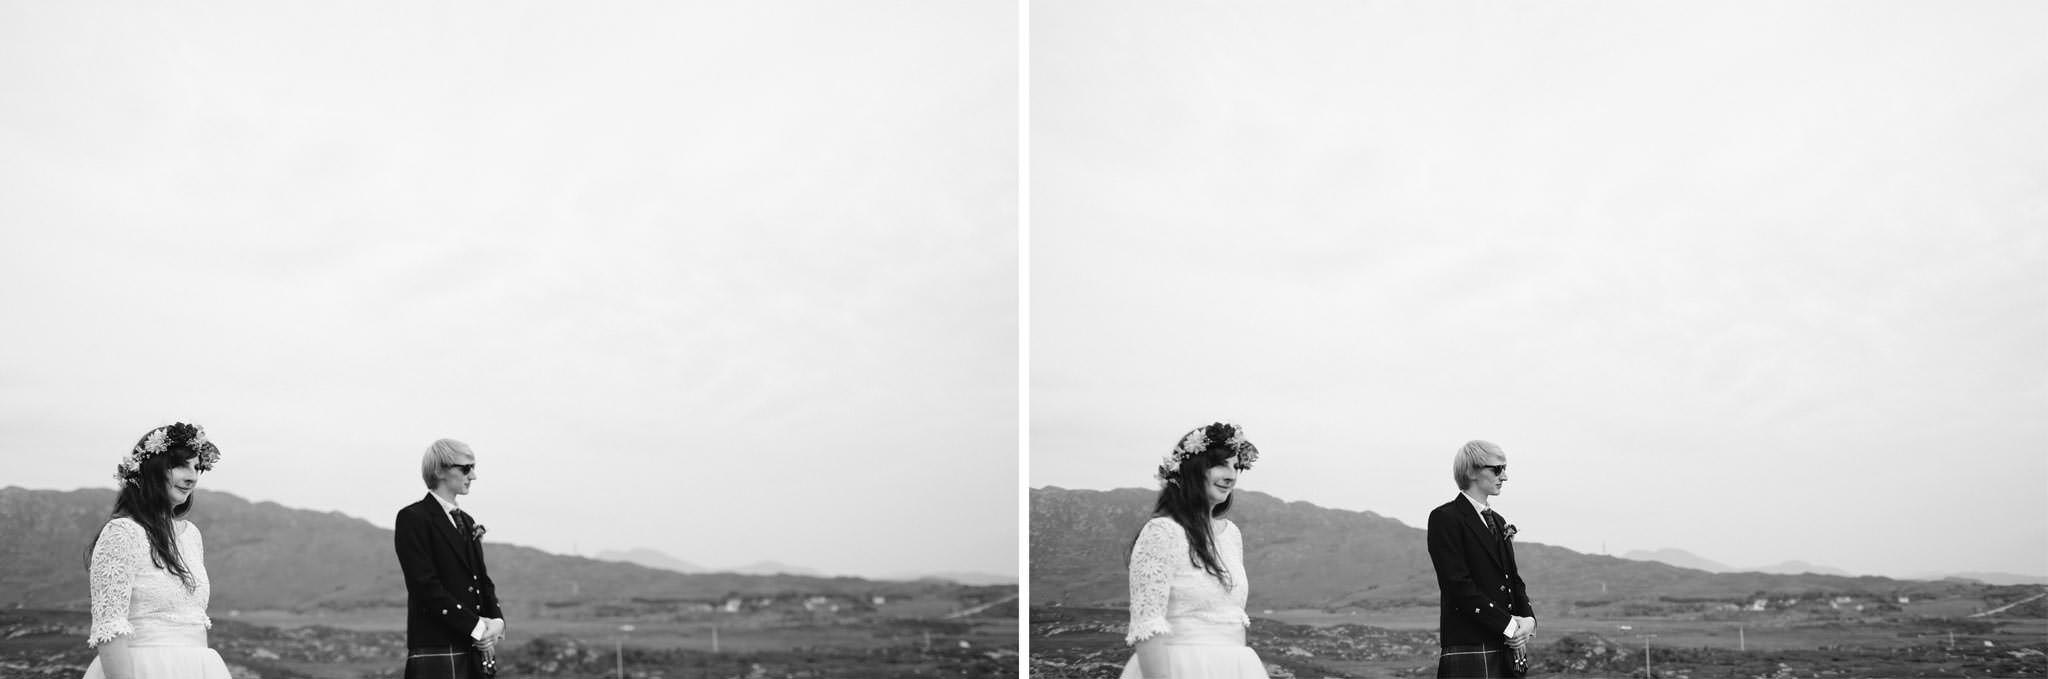 wedding-photographer-arisaig-139